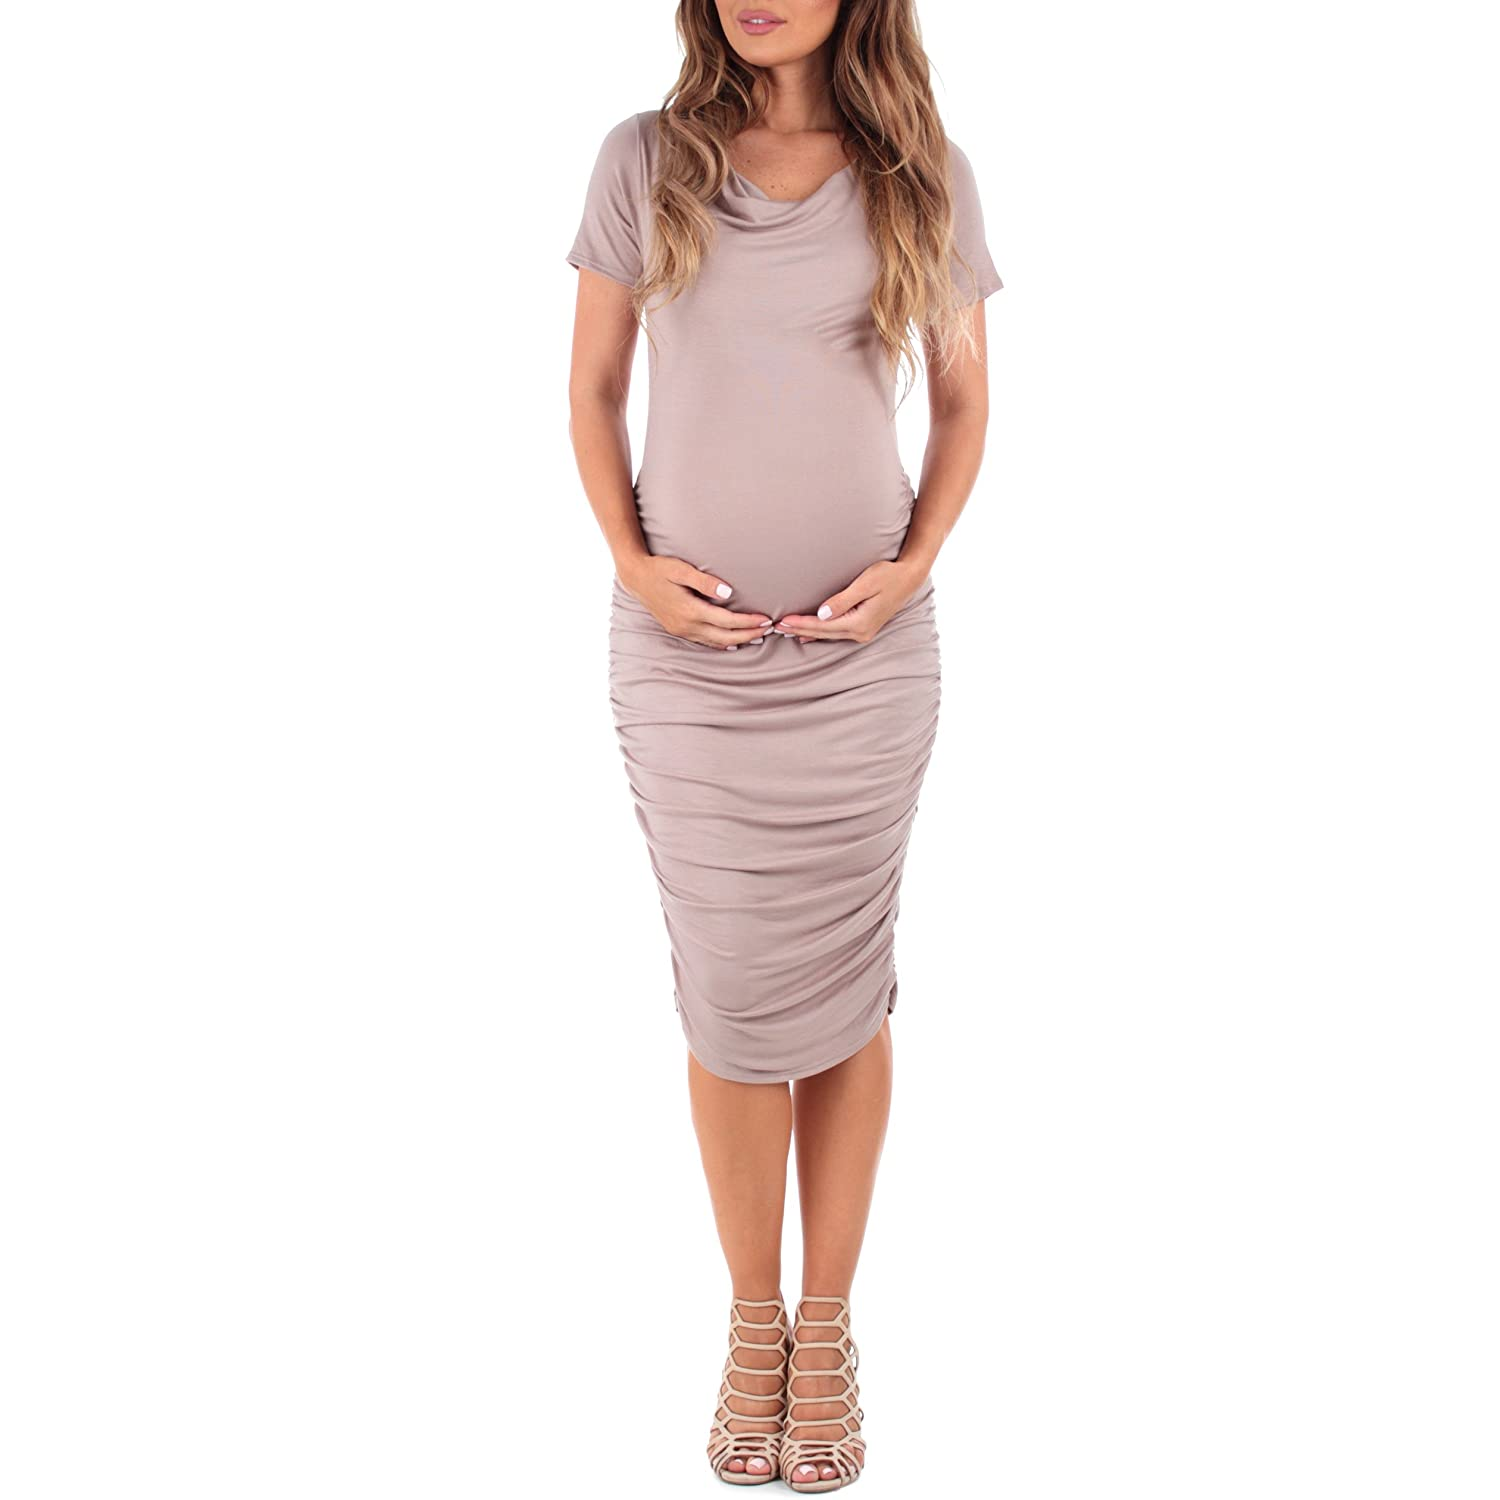 b67e9ccbe0ec This dress features a superbly soft and strechy rayon spandex material  which is perfect for a growing belly and soon to be nursing mother.